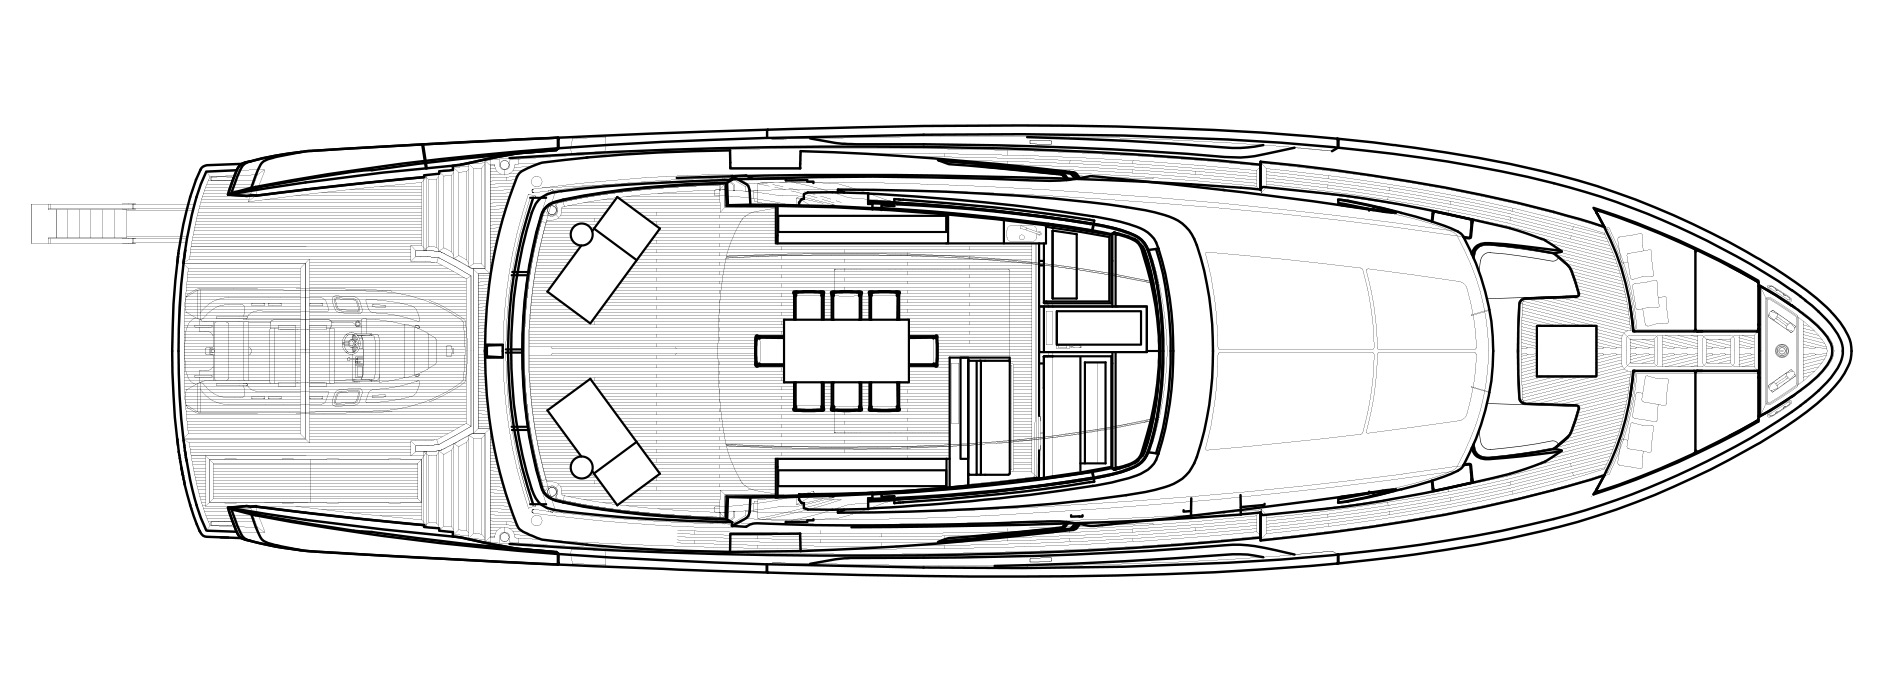 Sanlorenzo Yachts SX88 Flying bridge Version Lissoni